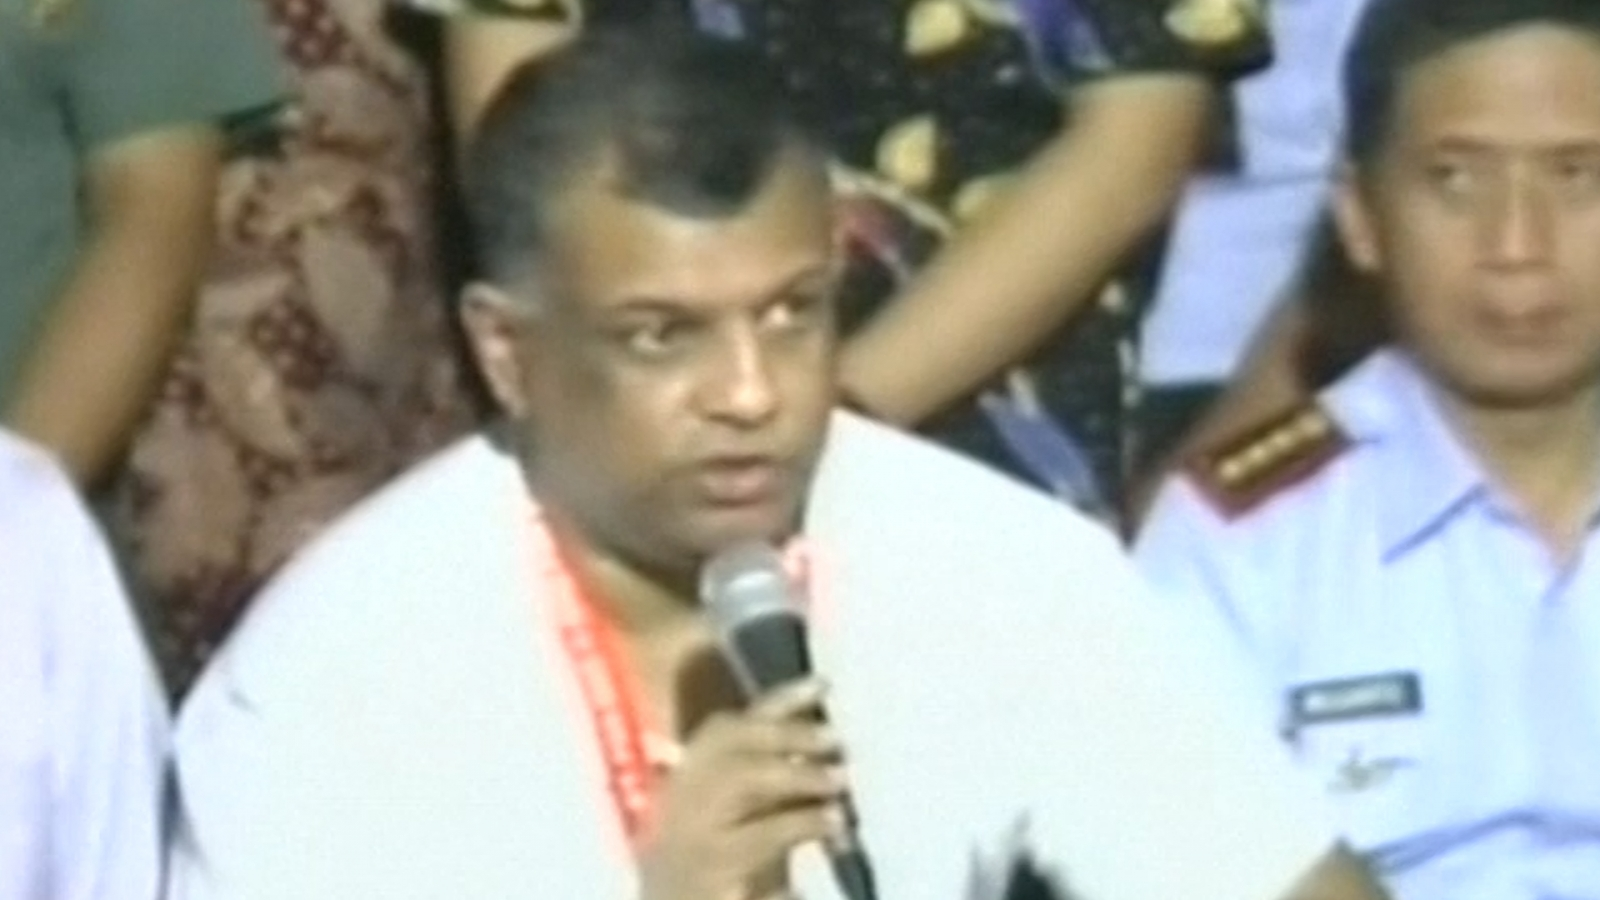 AirAsia QZ8501: Airline boss Tony Fernandes 'devastated' by missing plane